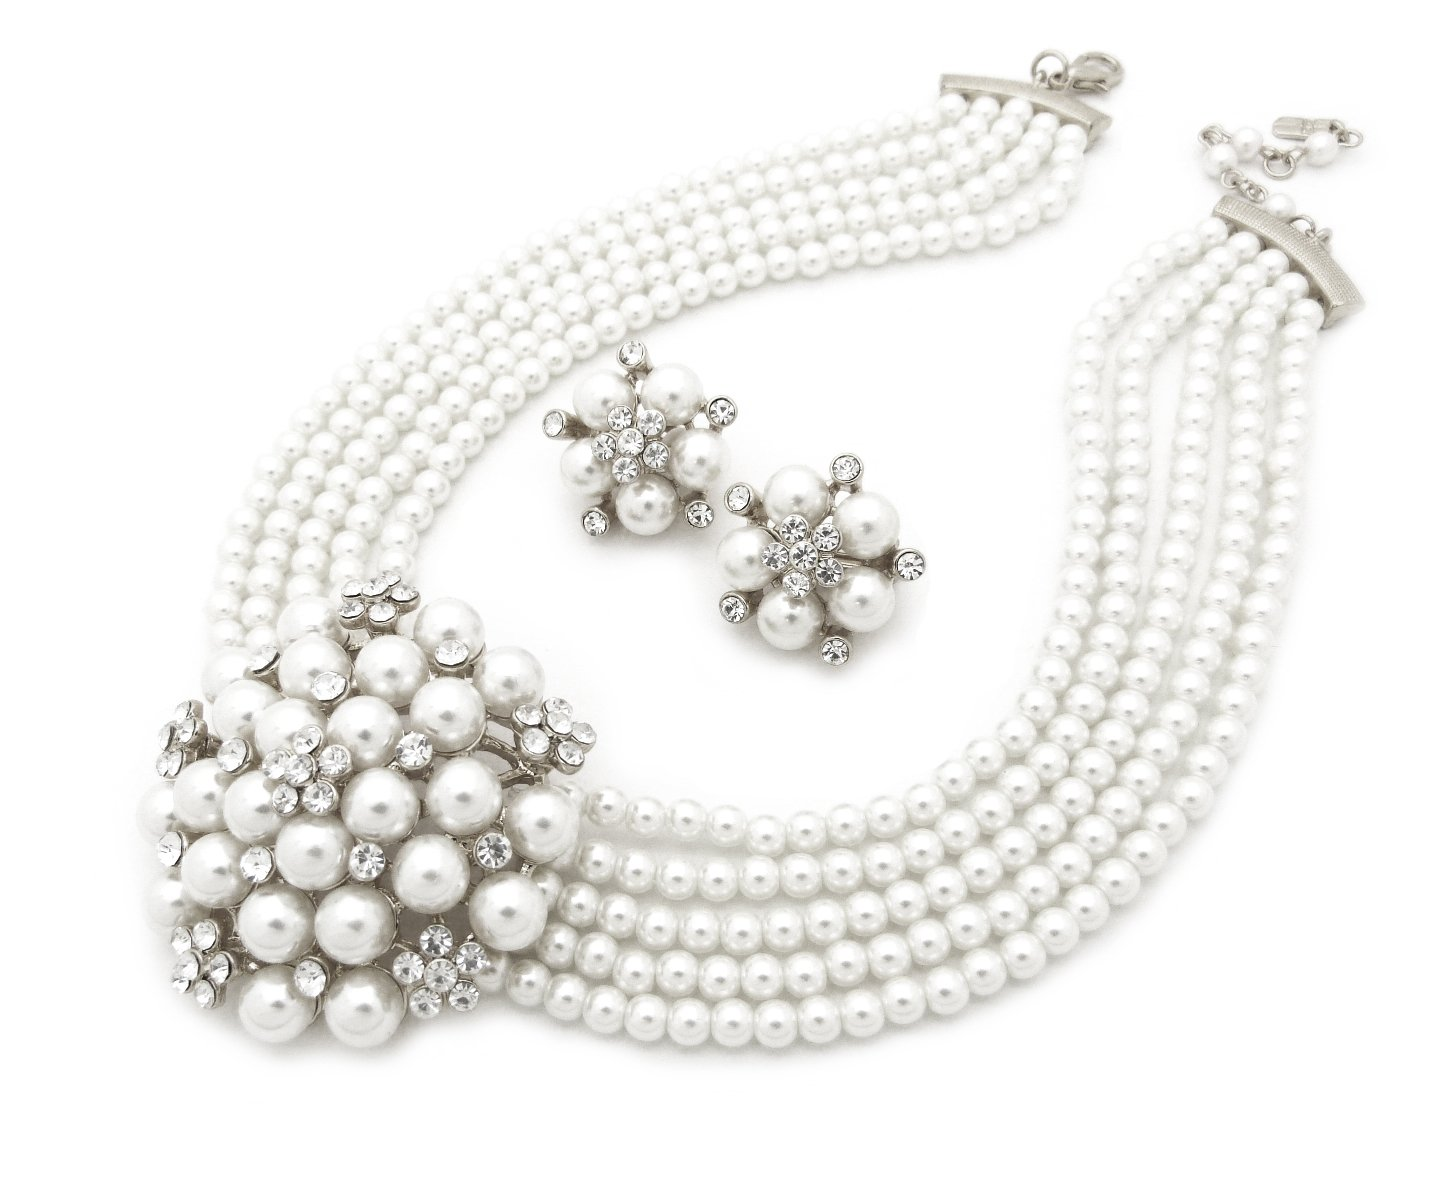 Fashion 21 5 Rows Rhinestone Accented Simulated Floral Pearl Cluster Necklace, Clip on Earring 2 Set (White)